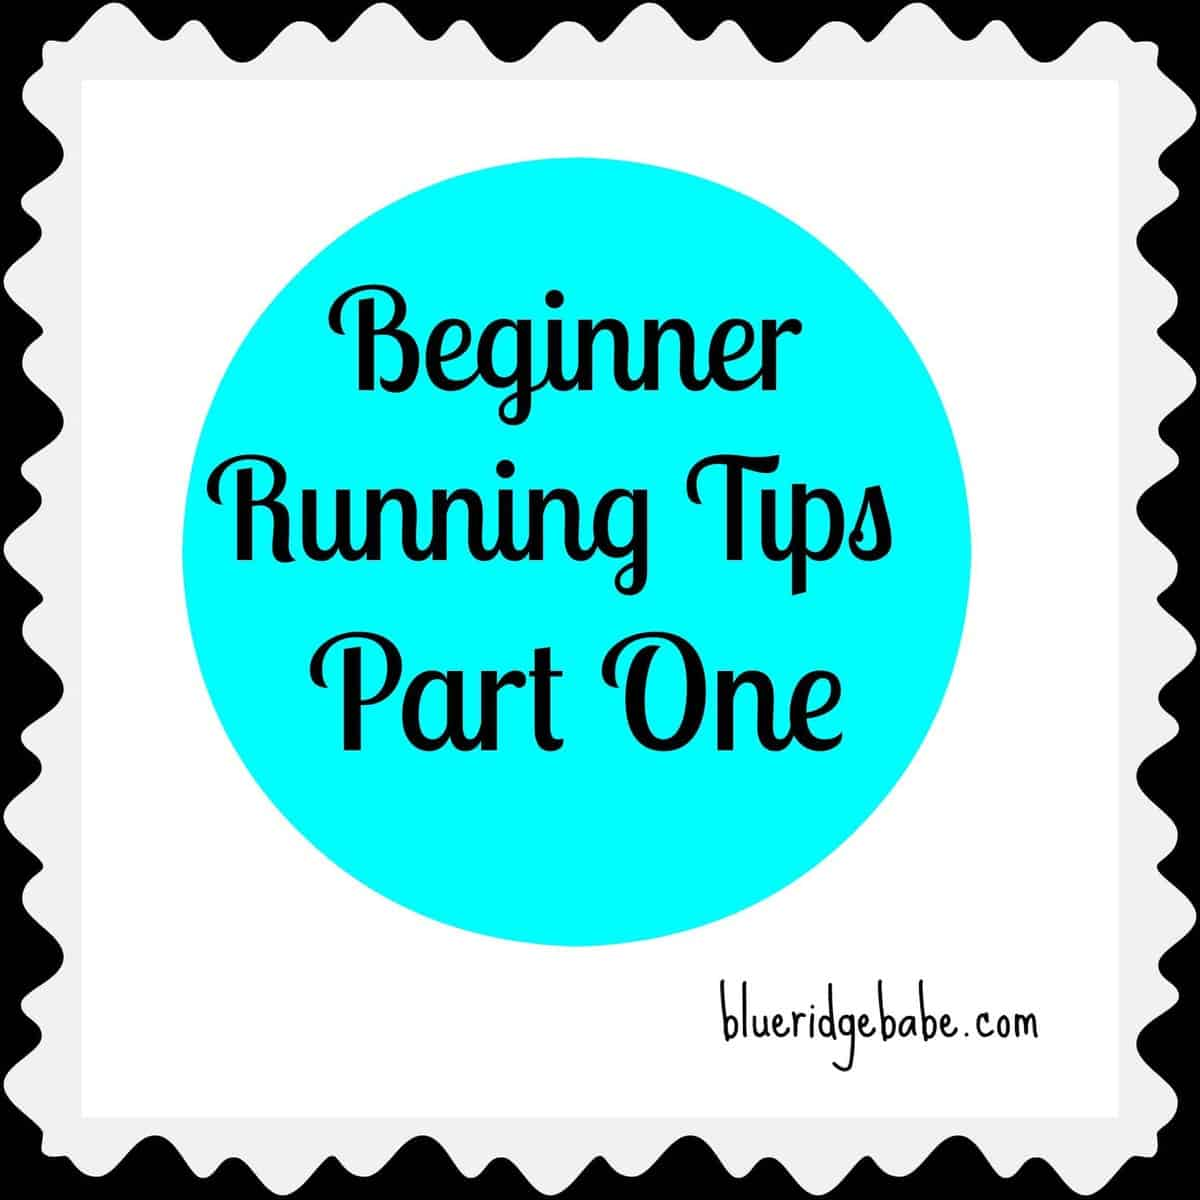 Running Tips for Beginners: Part One